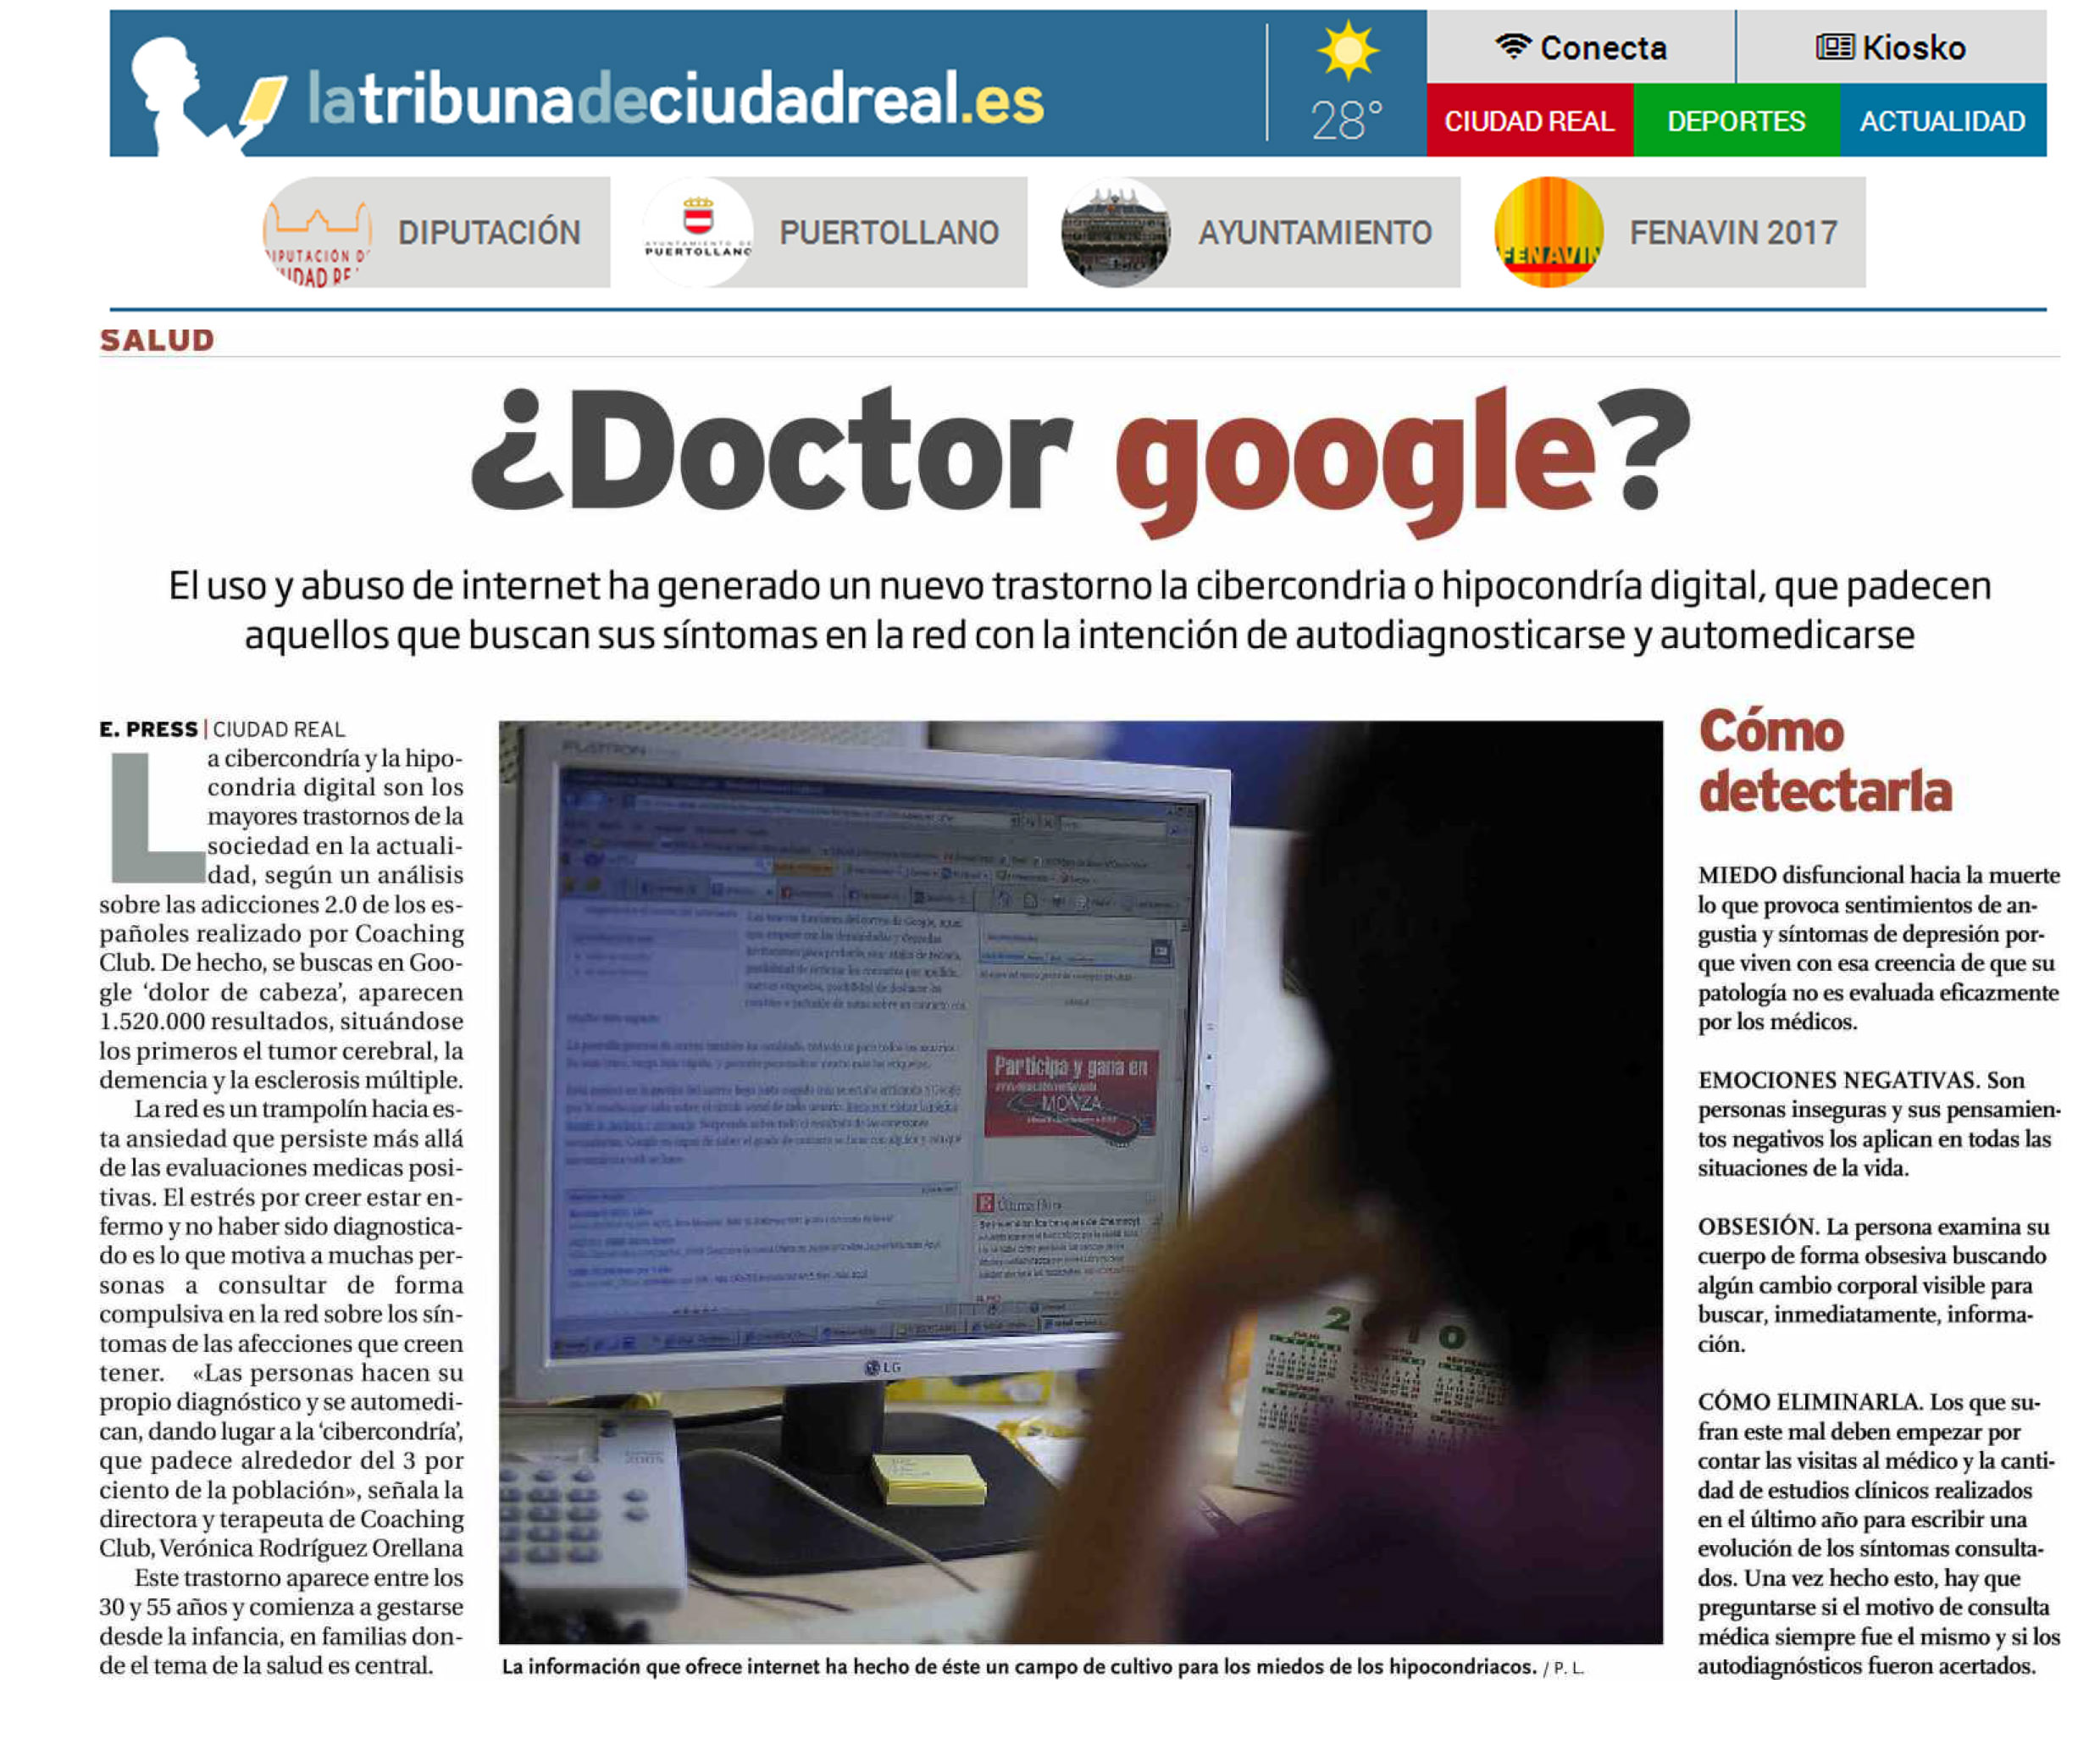 La Tribuna de Ciudad Real: ¿Doctor Google?